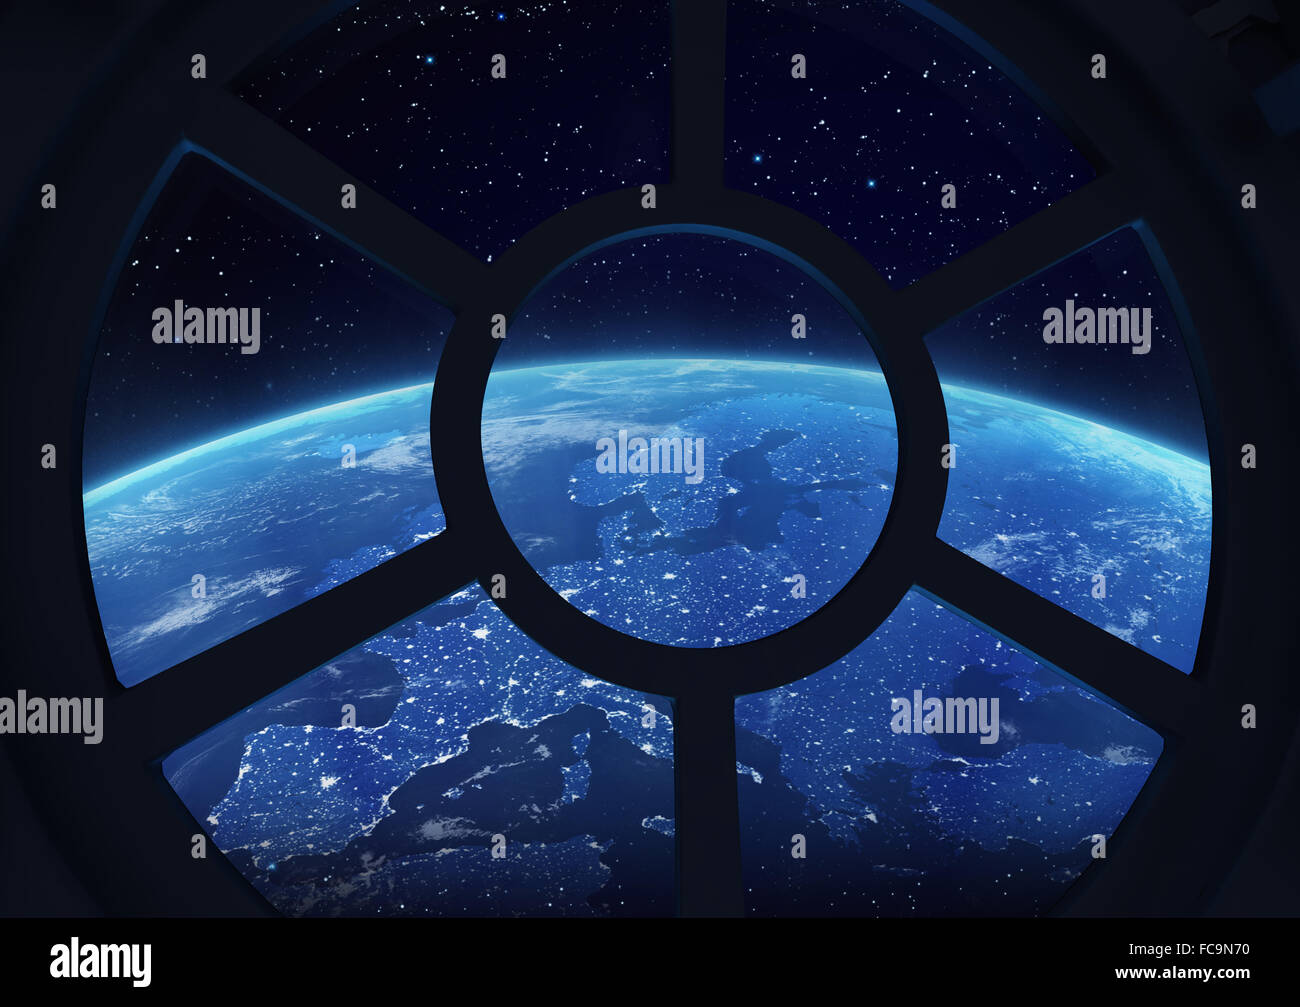 A round window on a space station with a view of Earth below - Stock Image